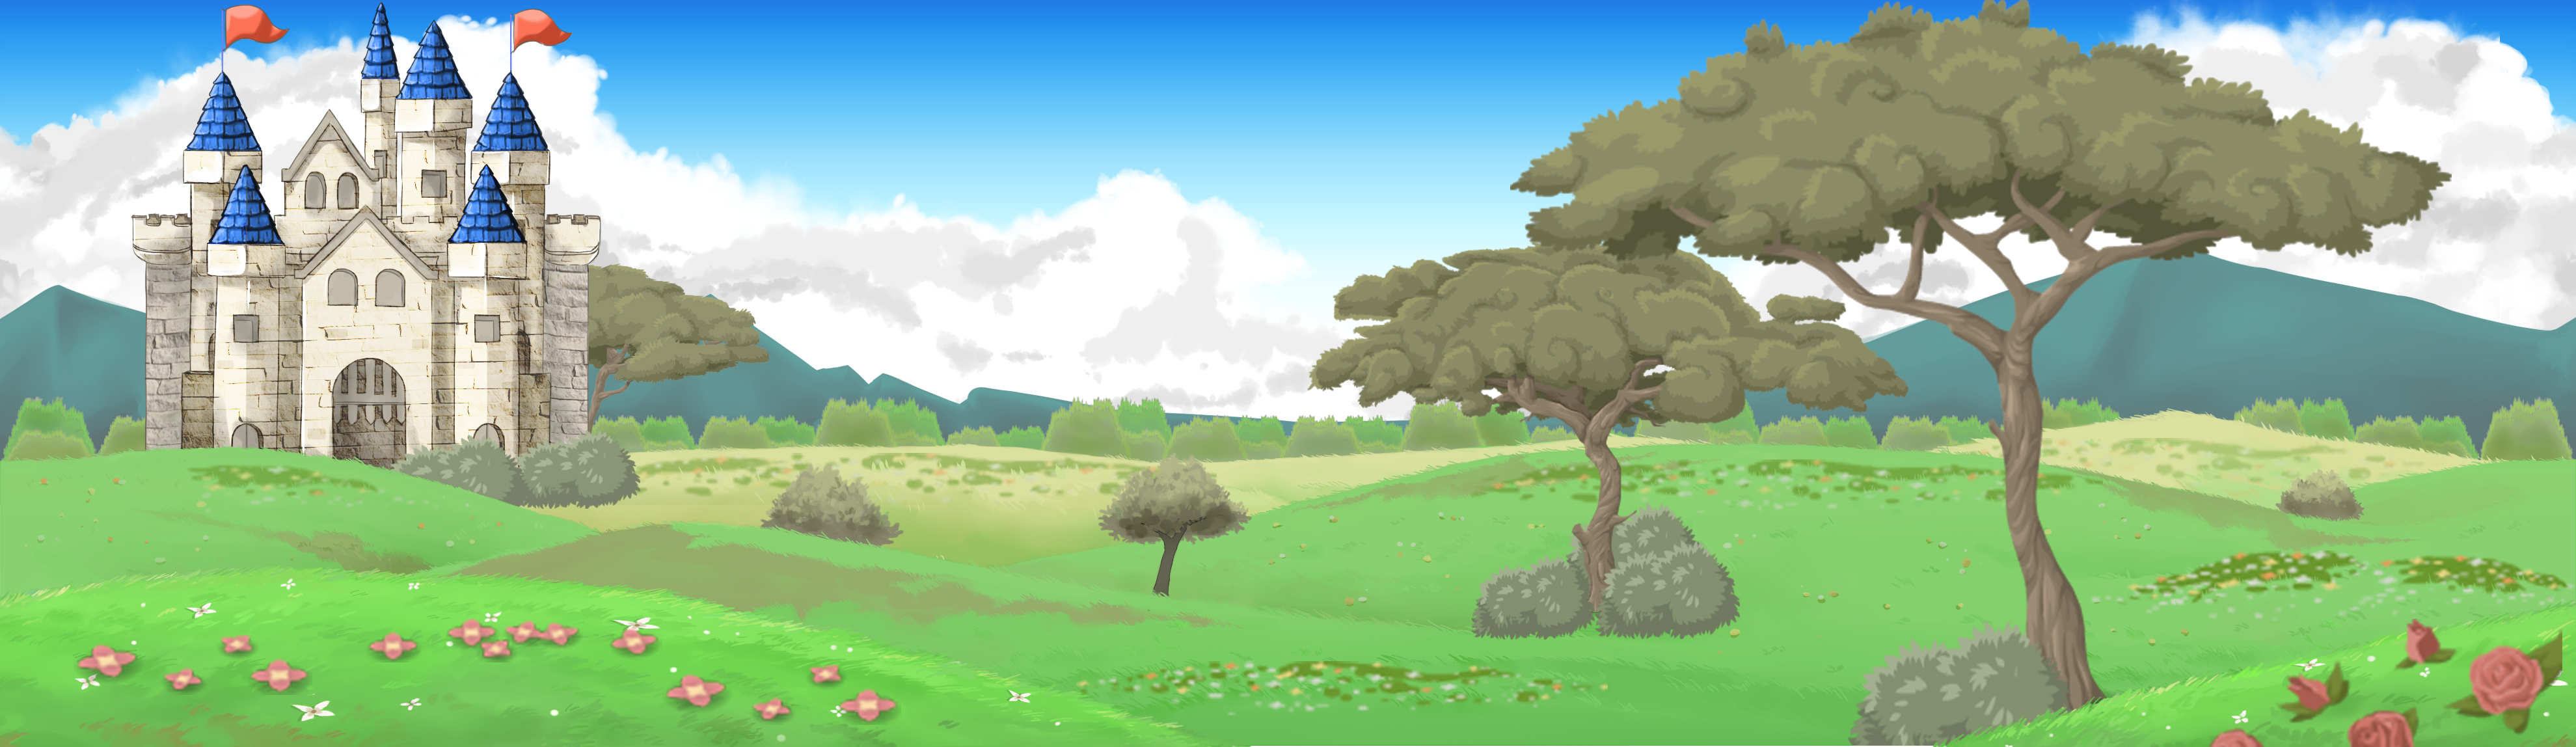 Background Sample_01